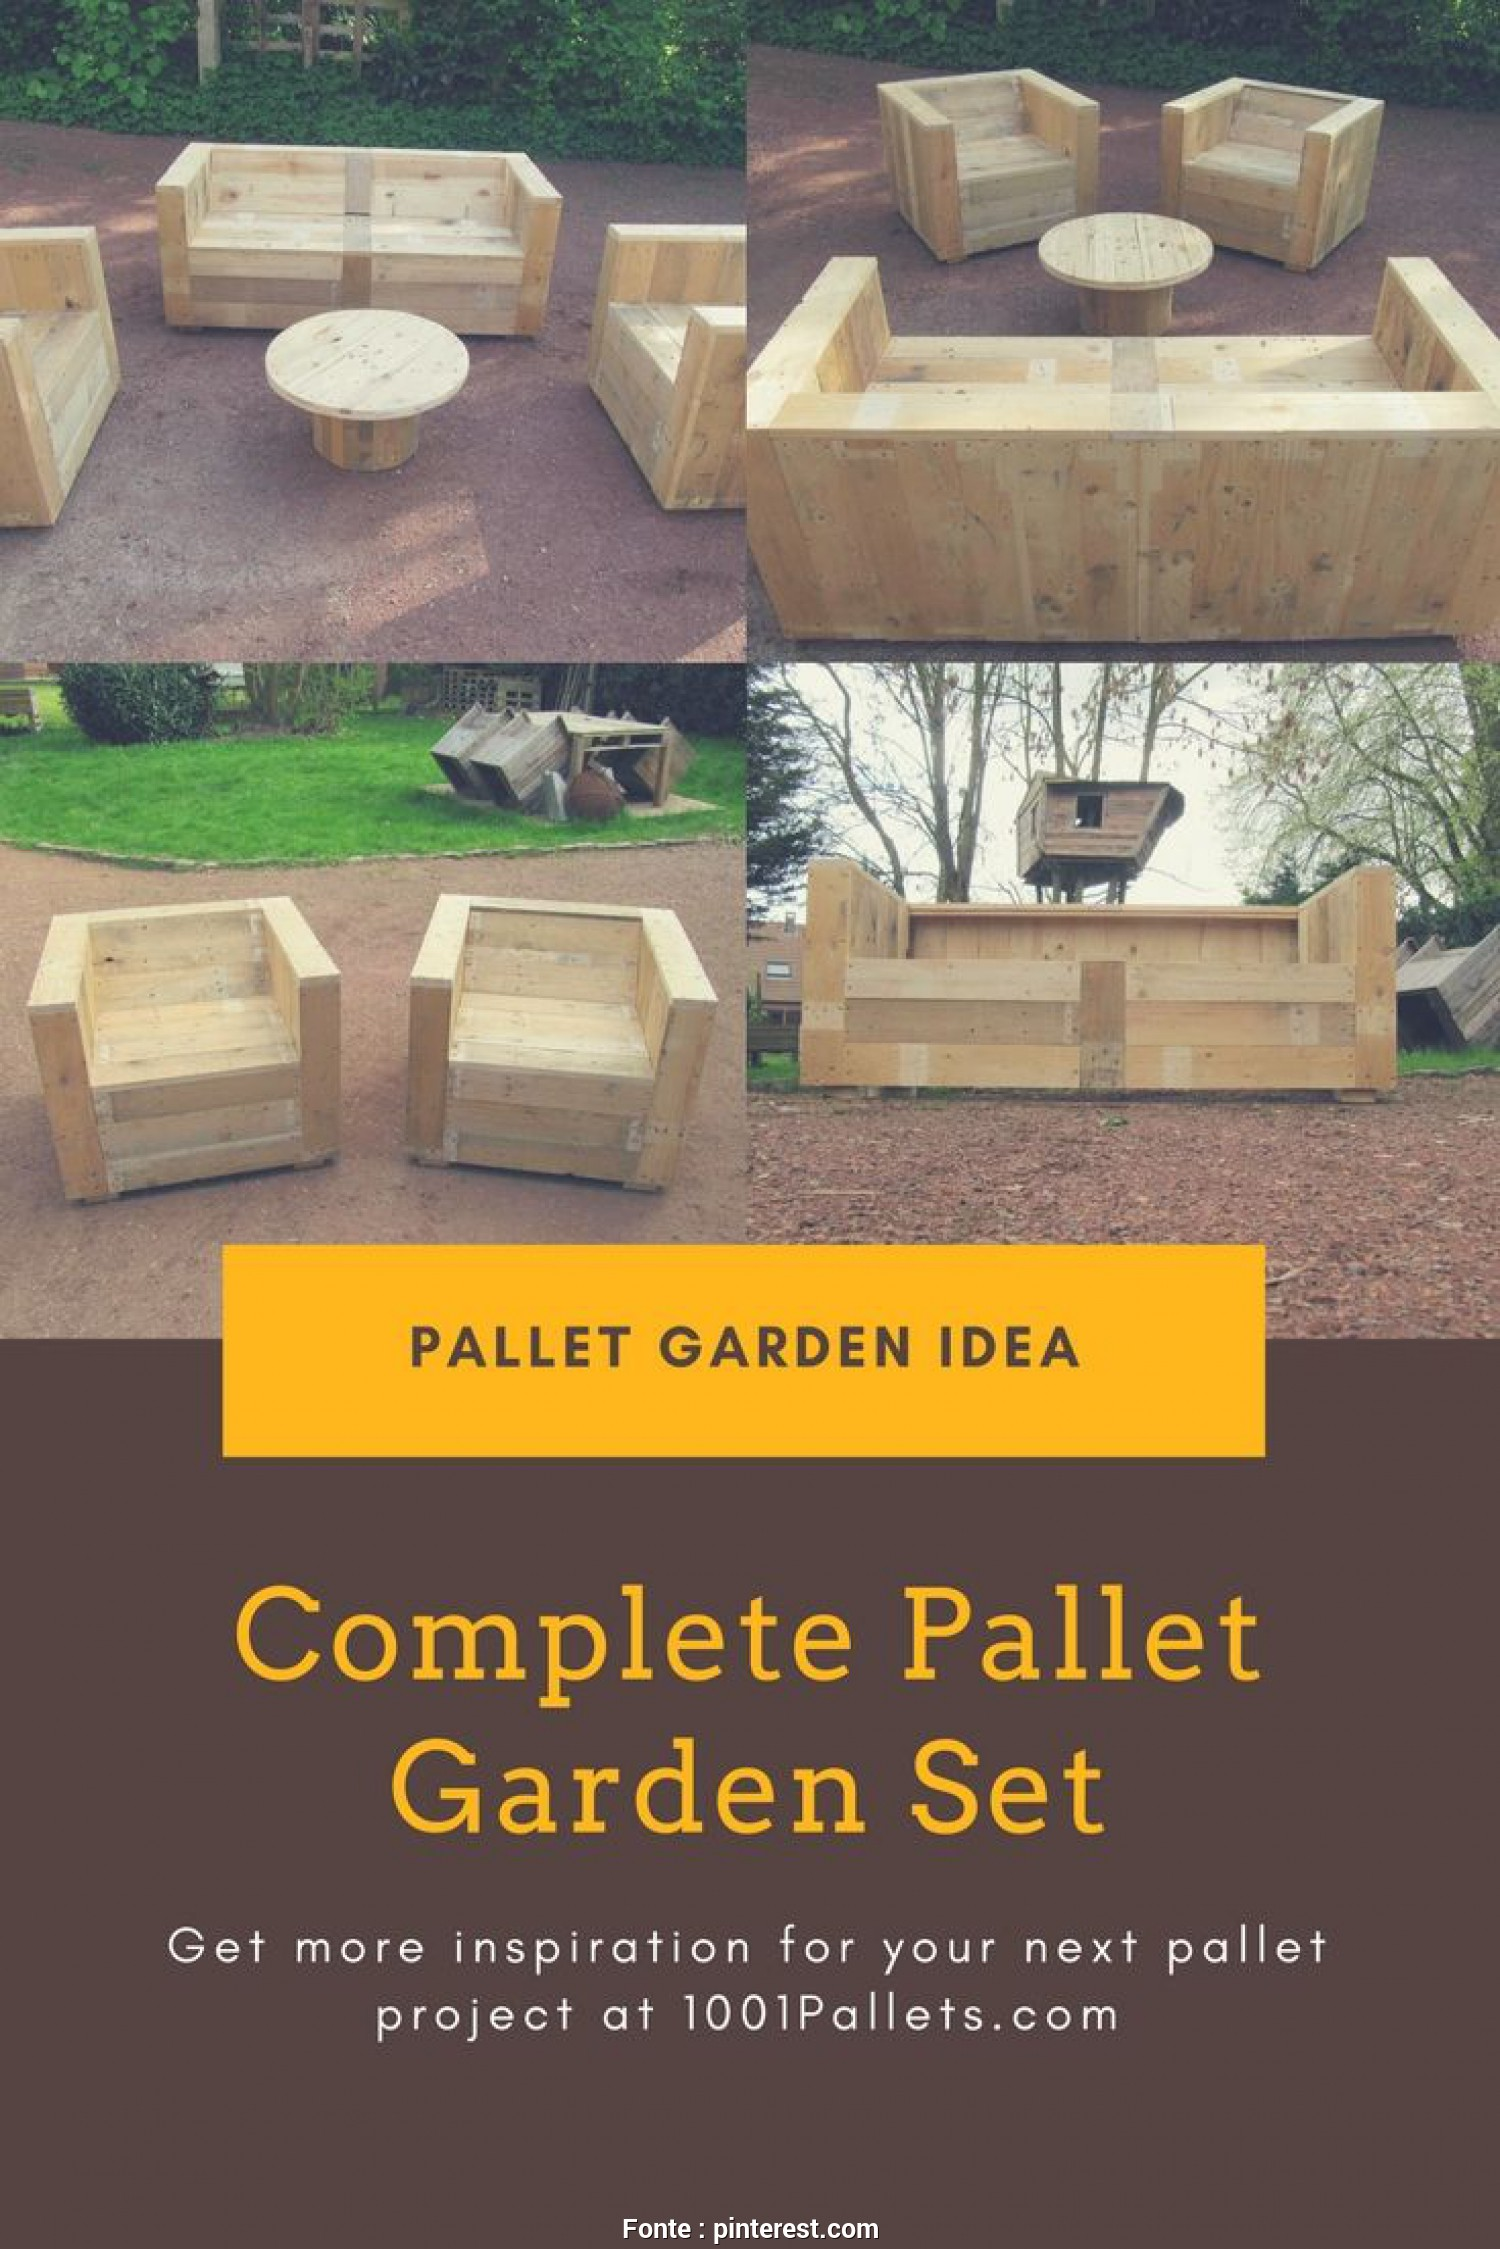 Divano Pallet Pdf, Deale I Already Posted My Pallet Tree House, Here Is What I Made To Complete, Garden